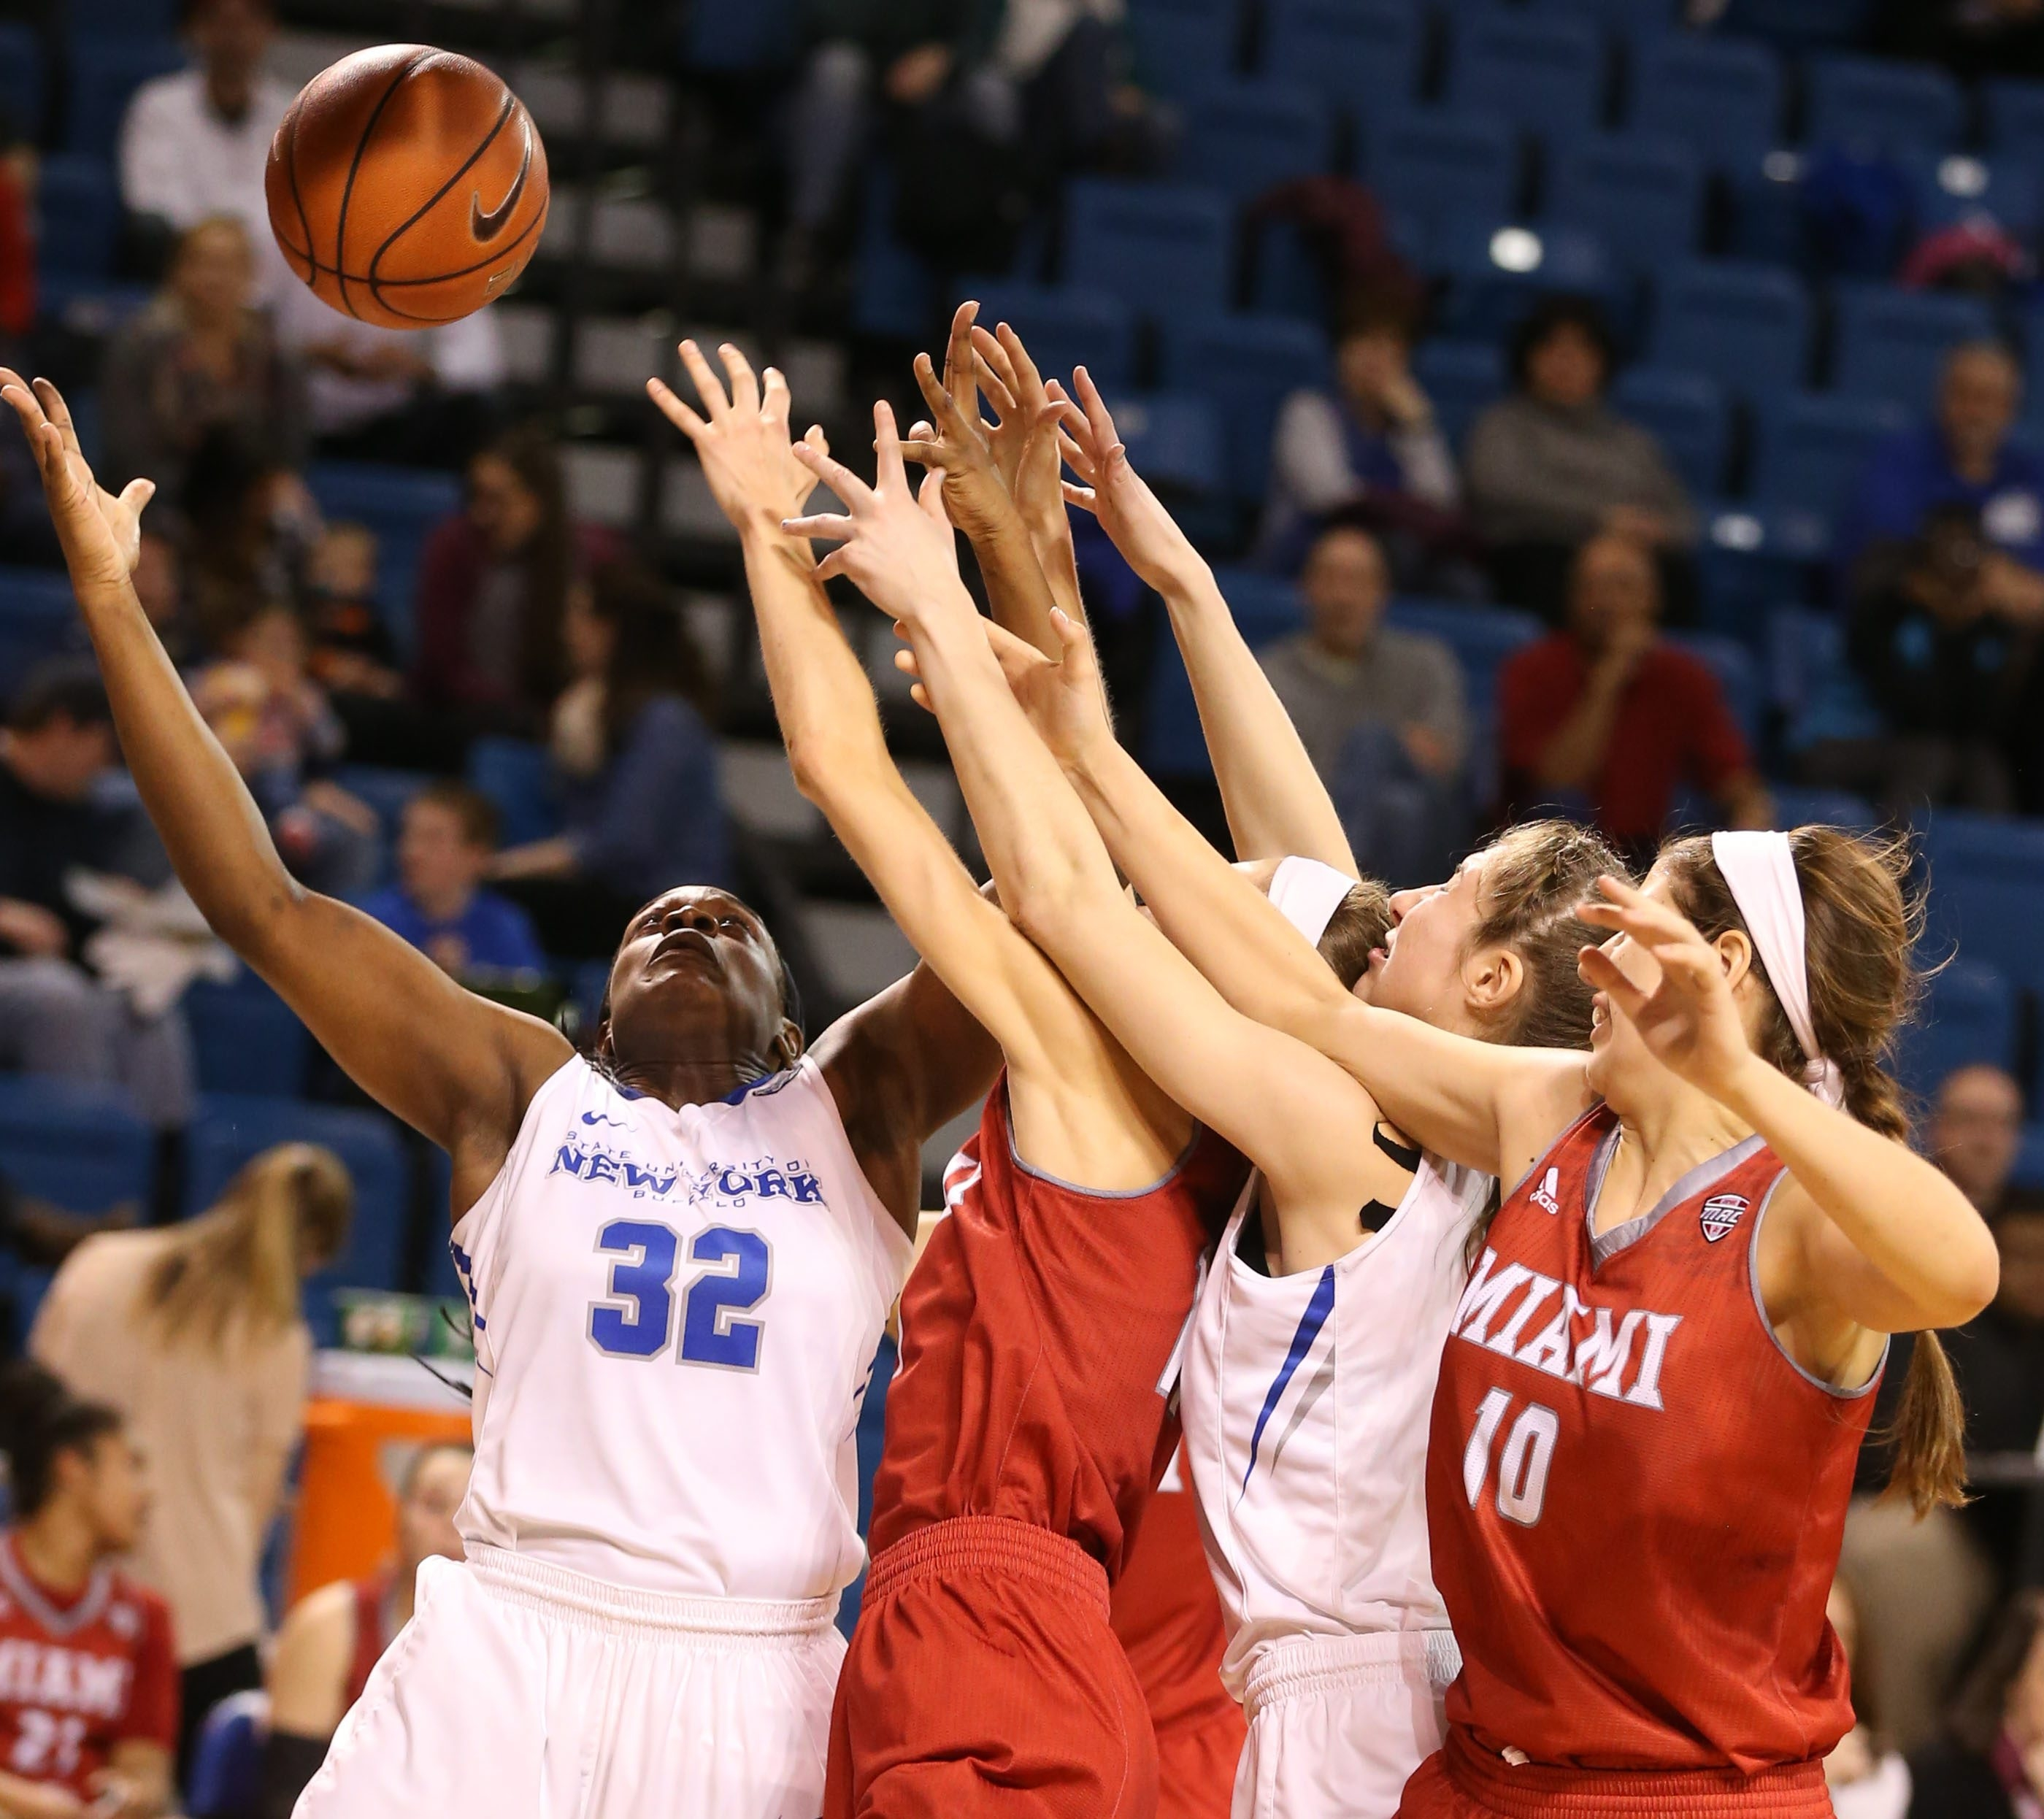 Brittany Morrison (32) emerged as an important low-post player for UB in the drive to the MAC championship.